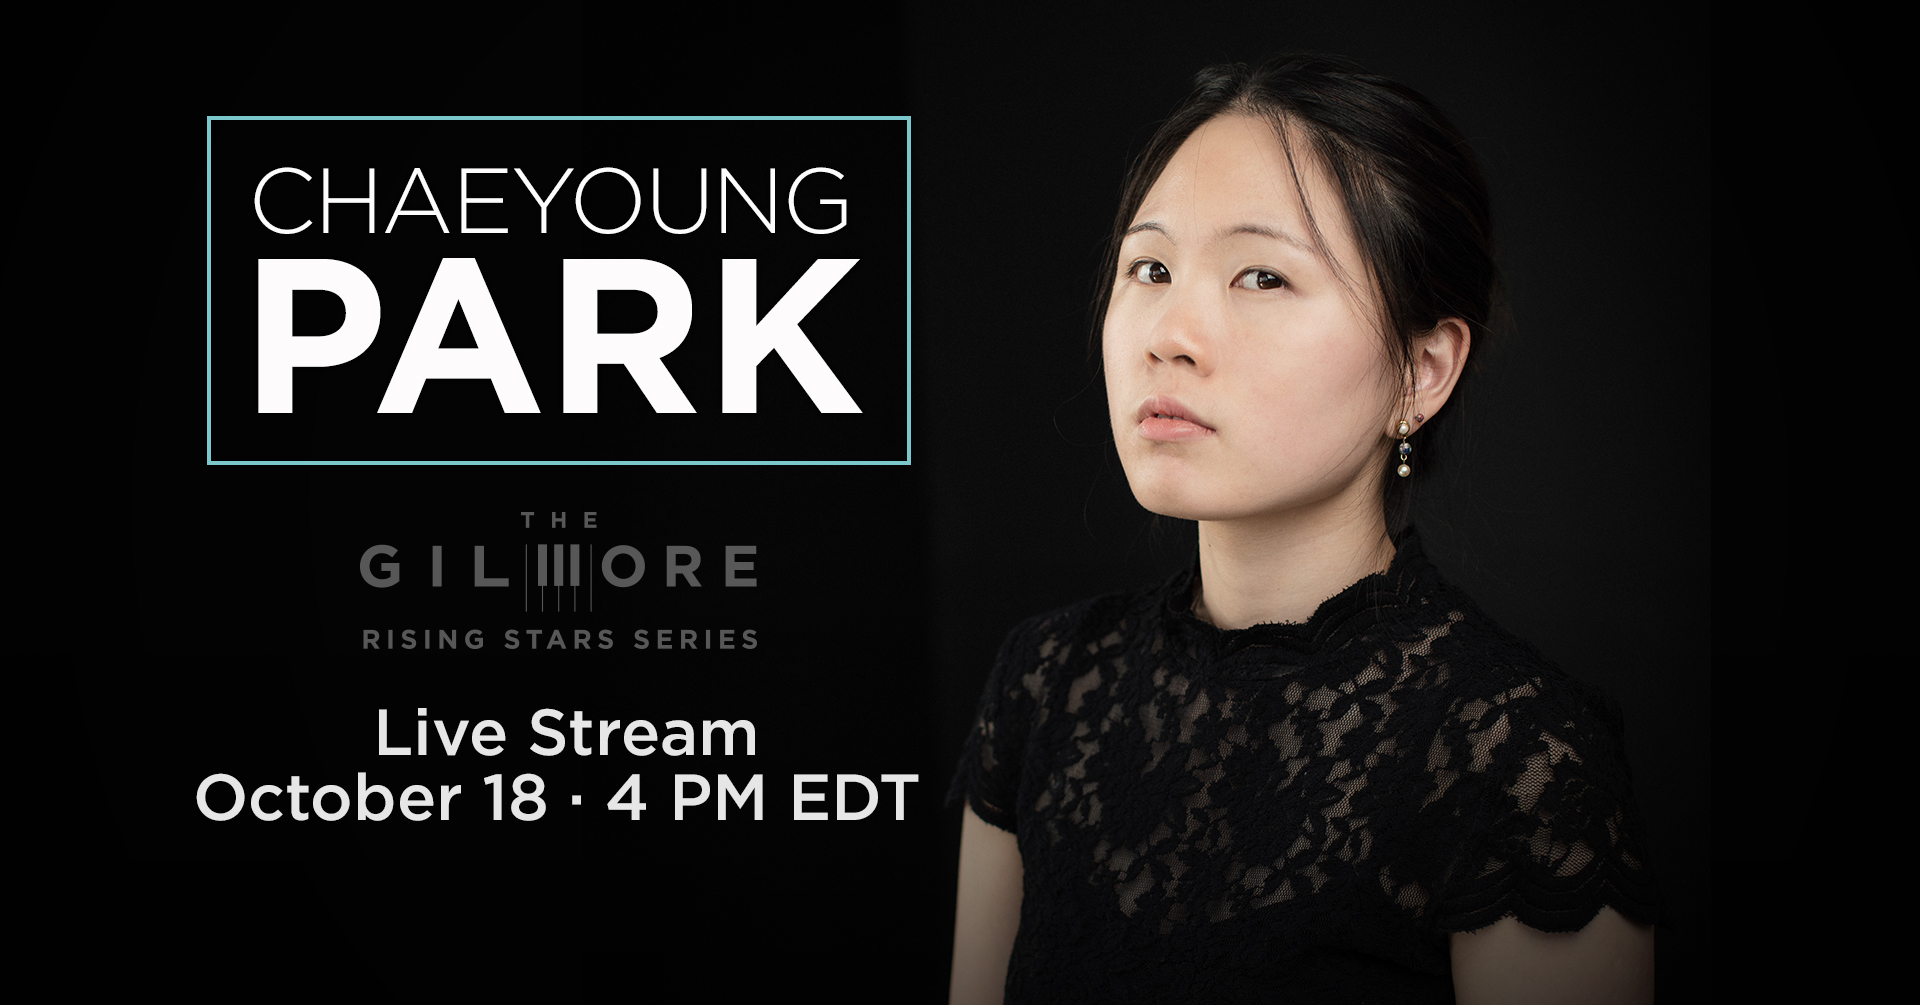 Chaeyoung Park | Rising Stars Live Stream Event